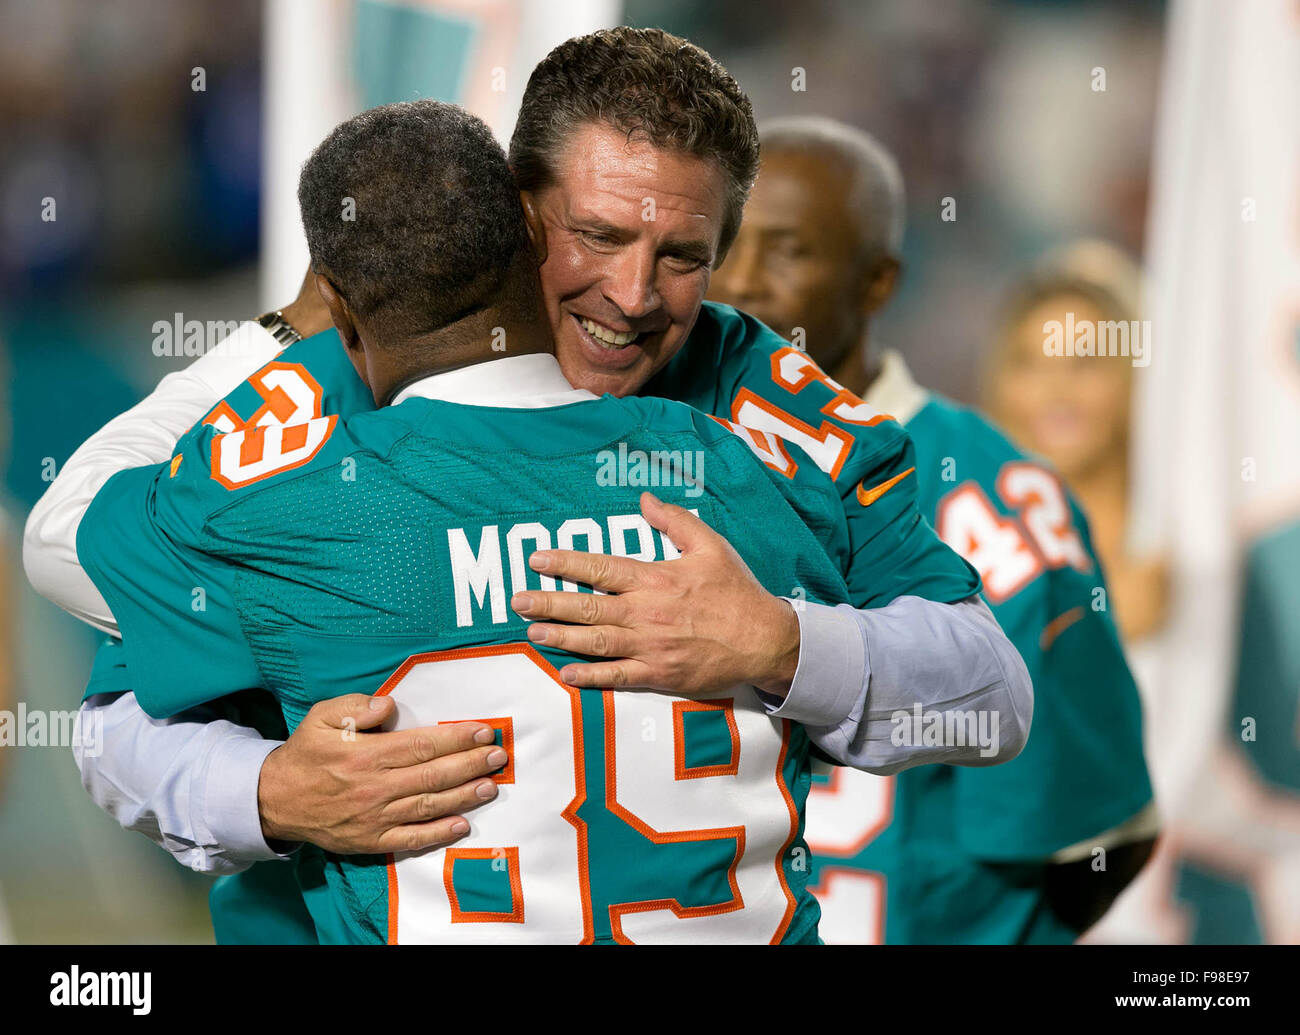 new arrival 88103 26ed2 Nat Moore Stock Photos & Nat Moore Stock Images - Alamy